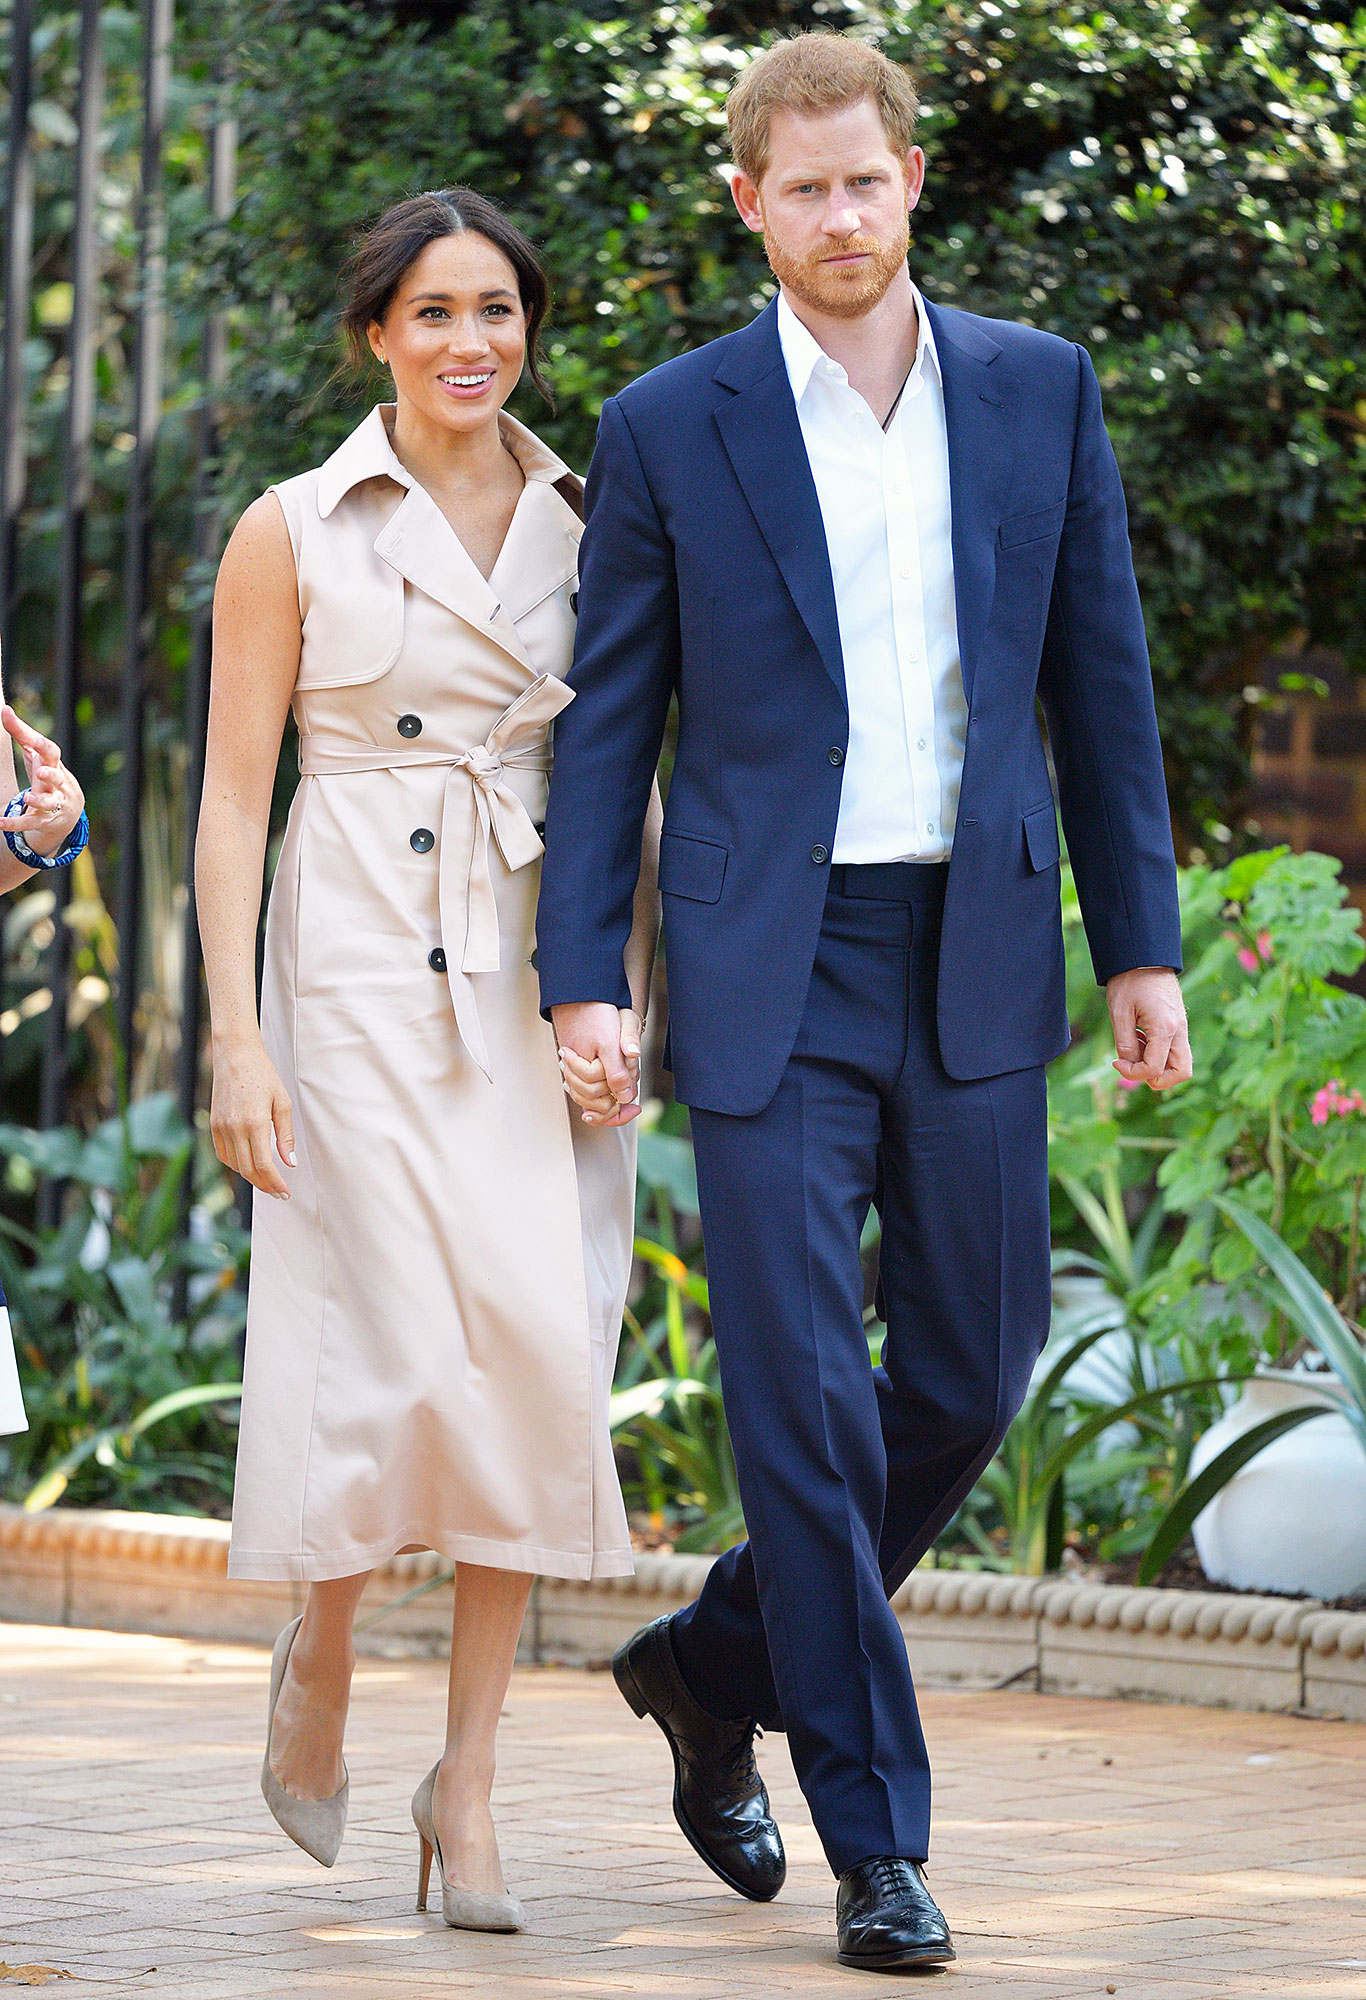 Prince Harry and Meghan Markle Will Never Get the Privacy They Desire in LA